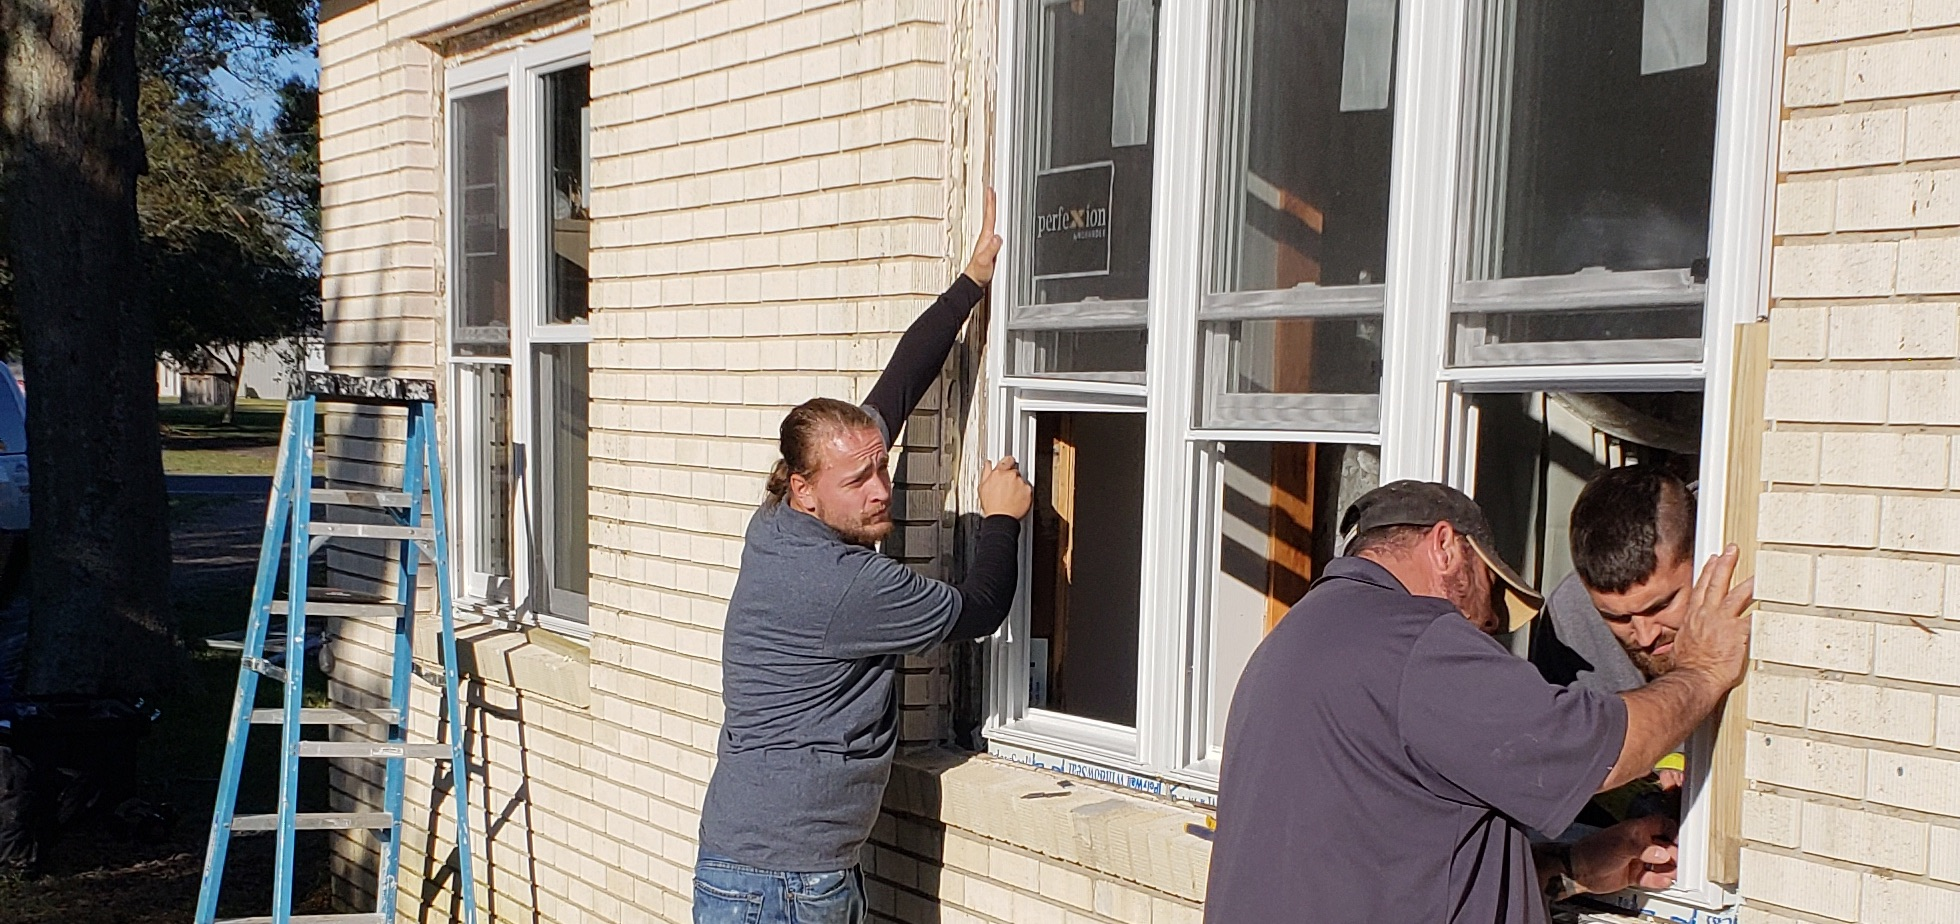 call M&M widndow solutions today for proper fitting windows